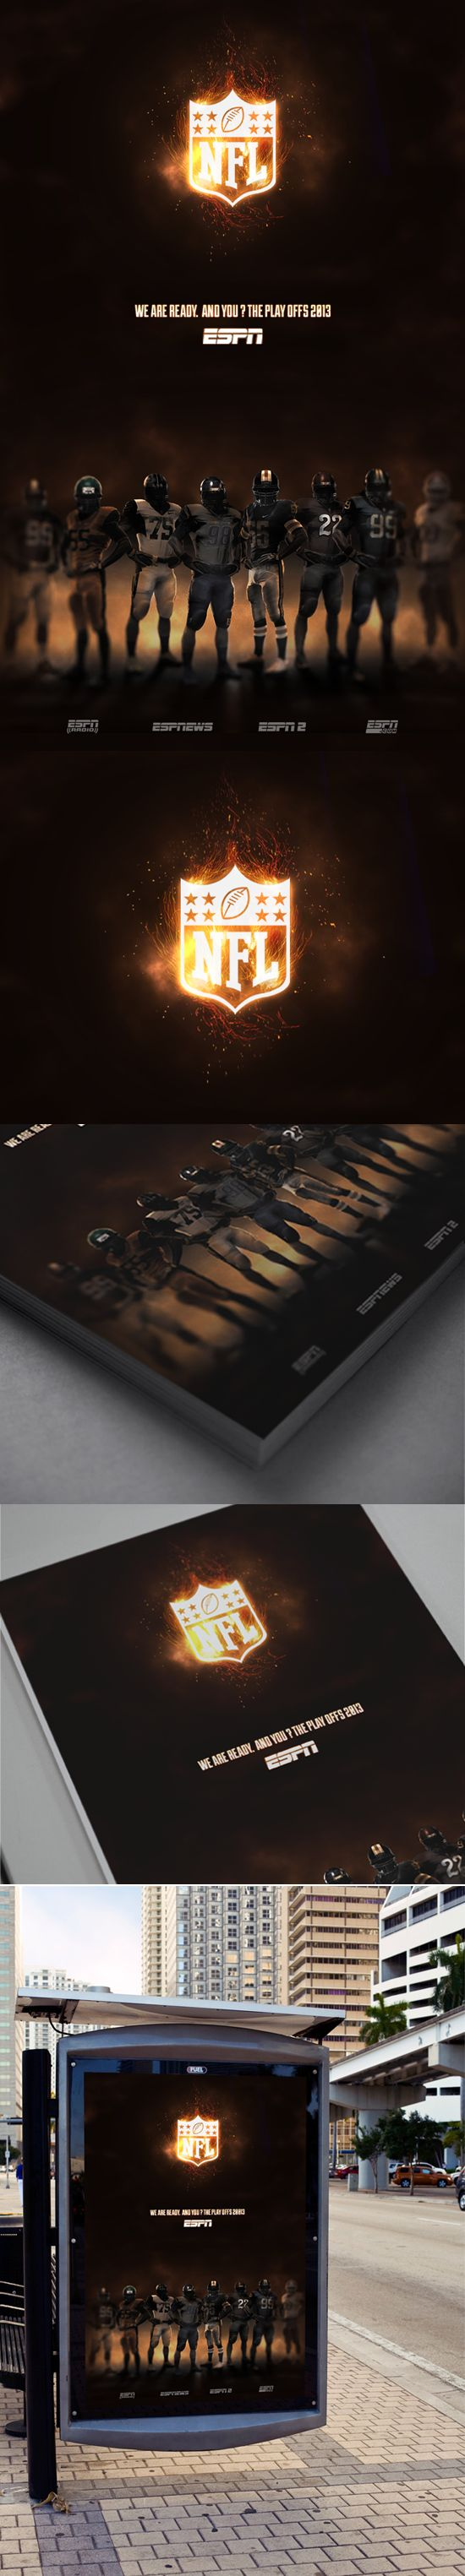 Creating advertising poster, for different media, to promote the 2013 NFL playoffs.Techniques have been used digital fotmanipulación, through Adobe Photshop.  #design #graphic #ads #nfl #espn #sports #football #usa #american #playoffs #2013 #creative #freelance